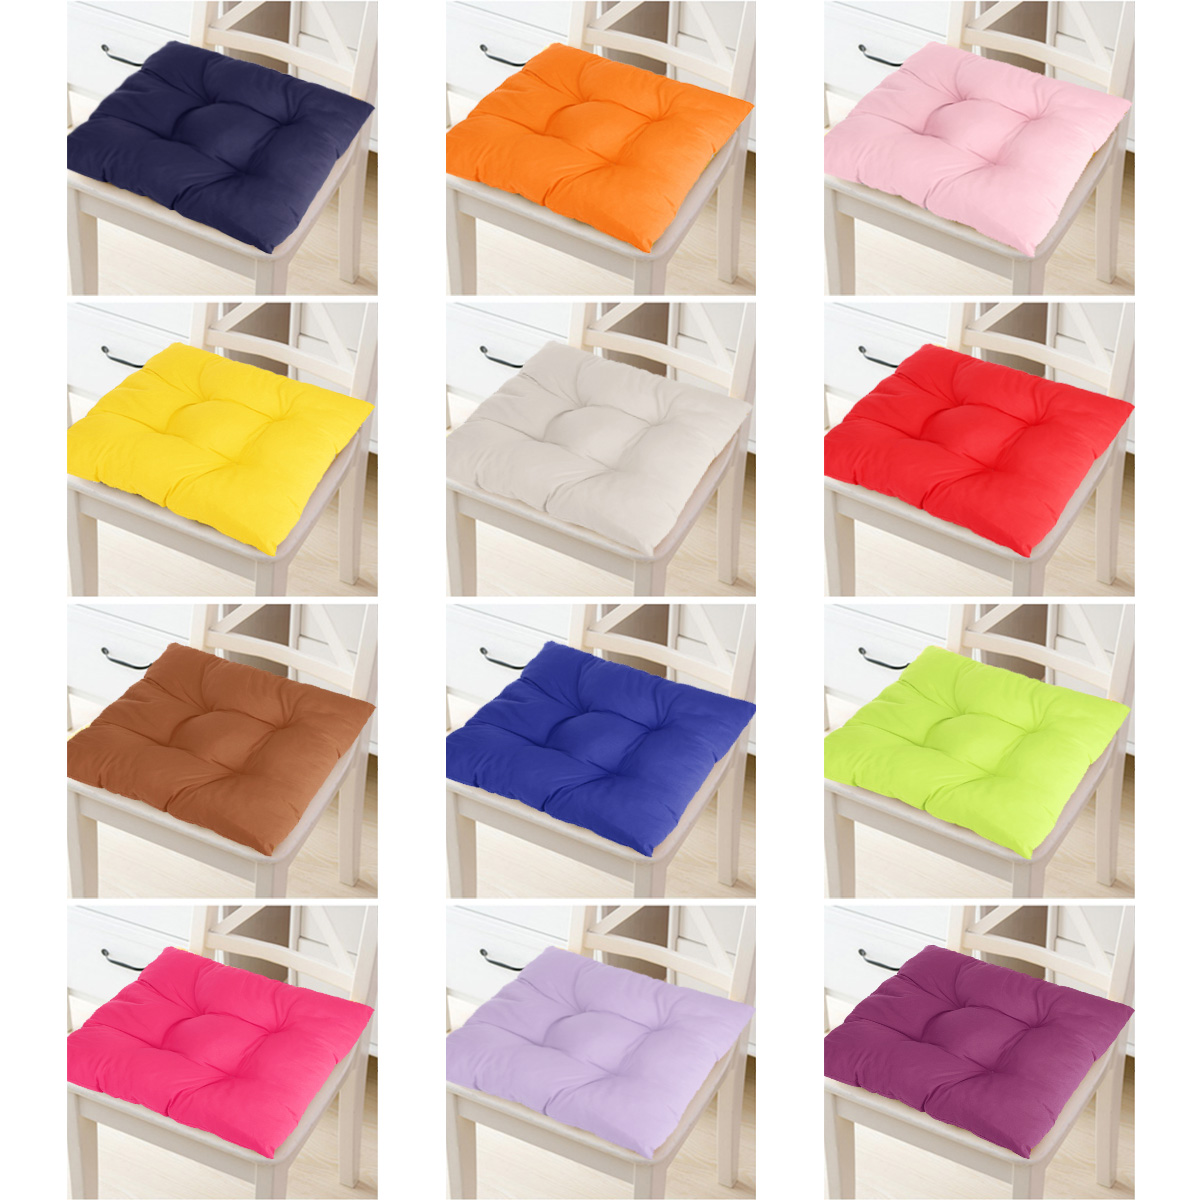 15 8 15 8 inch 12 colors soft chair seat pillow cushion pads indoor comfort sit mat with sling for garden patio home kitchen office chairs decor